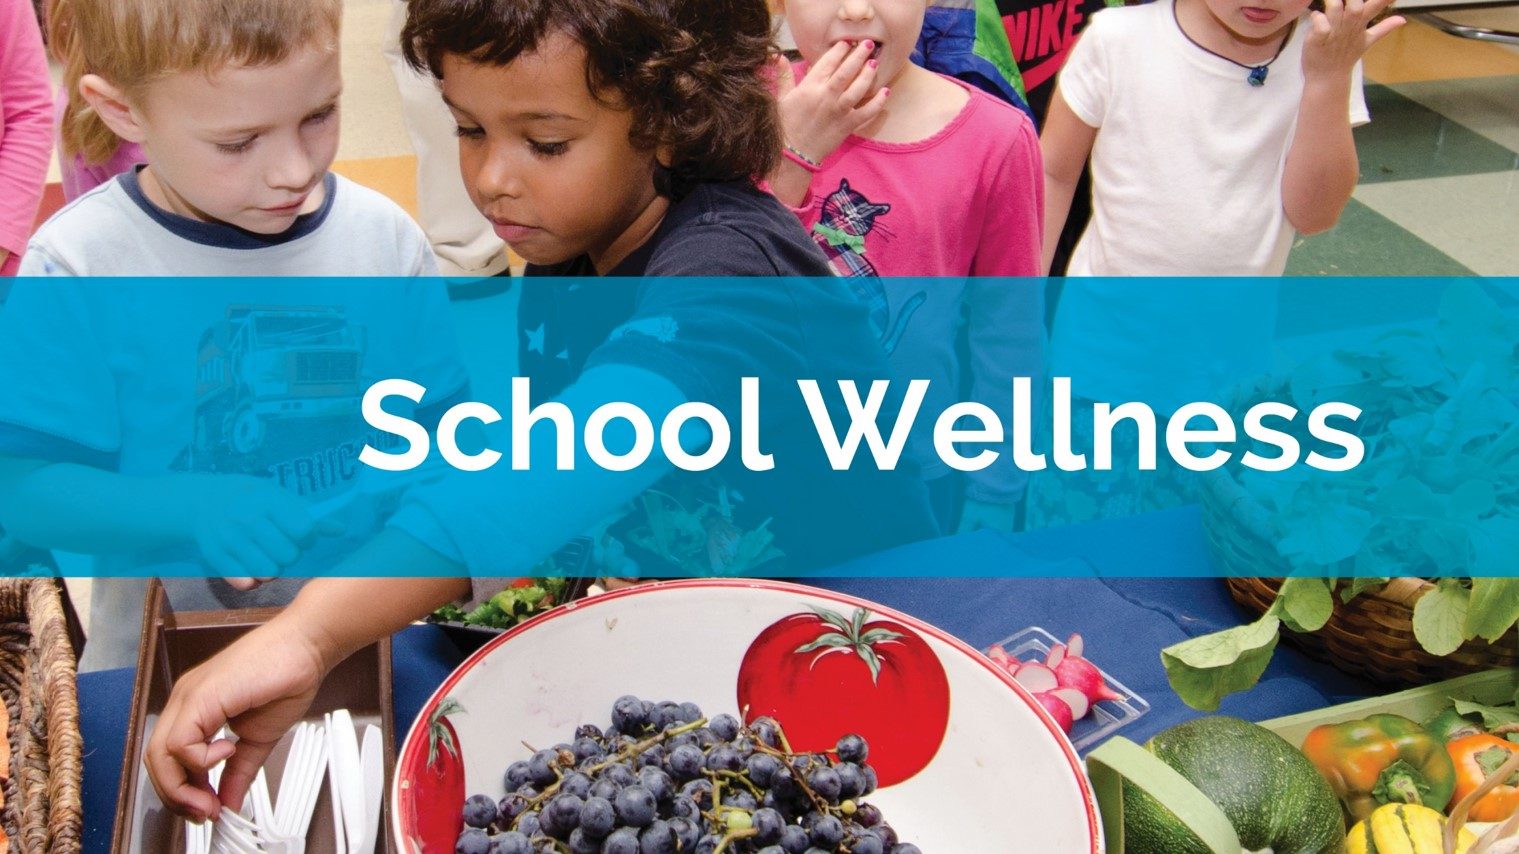 School Wellness